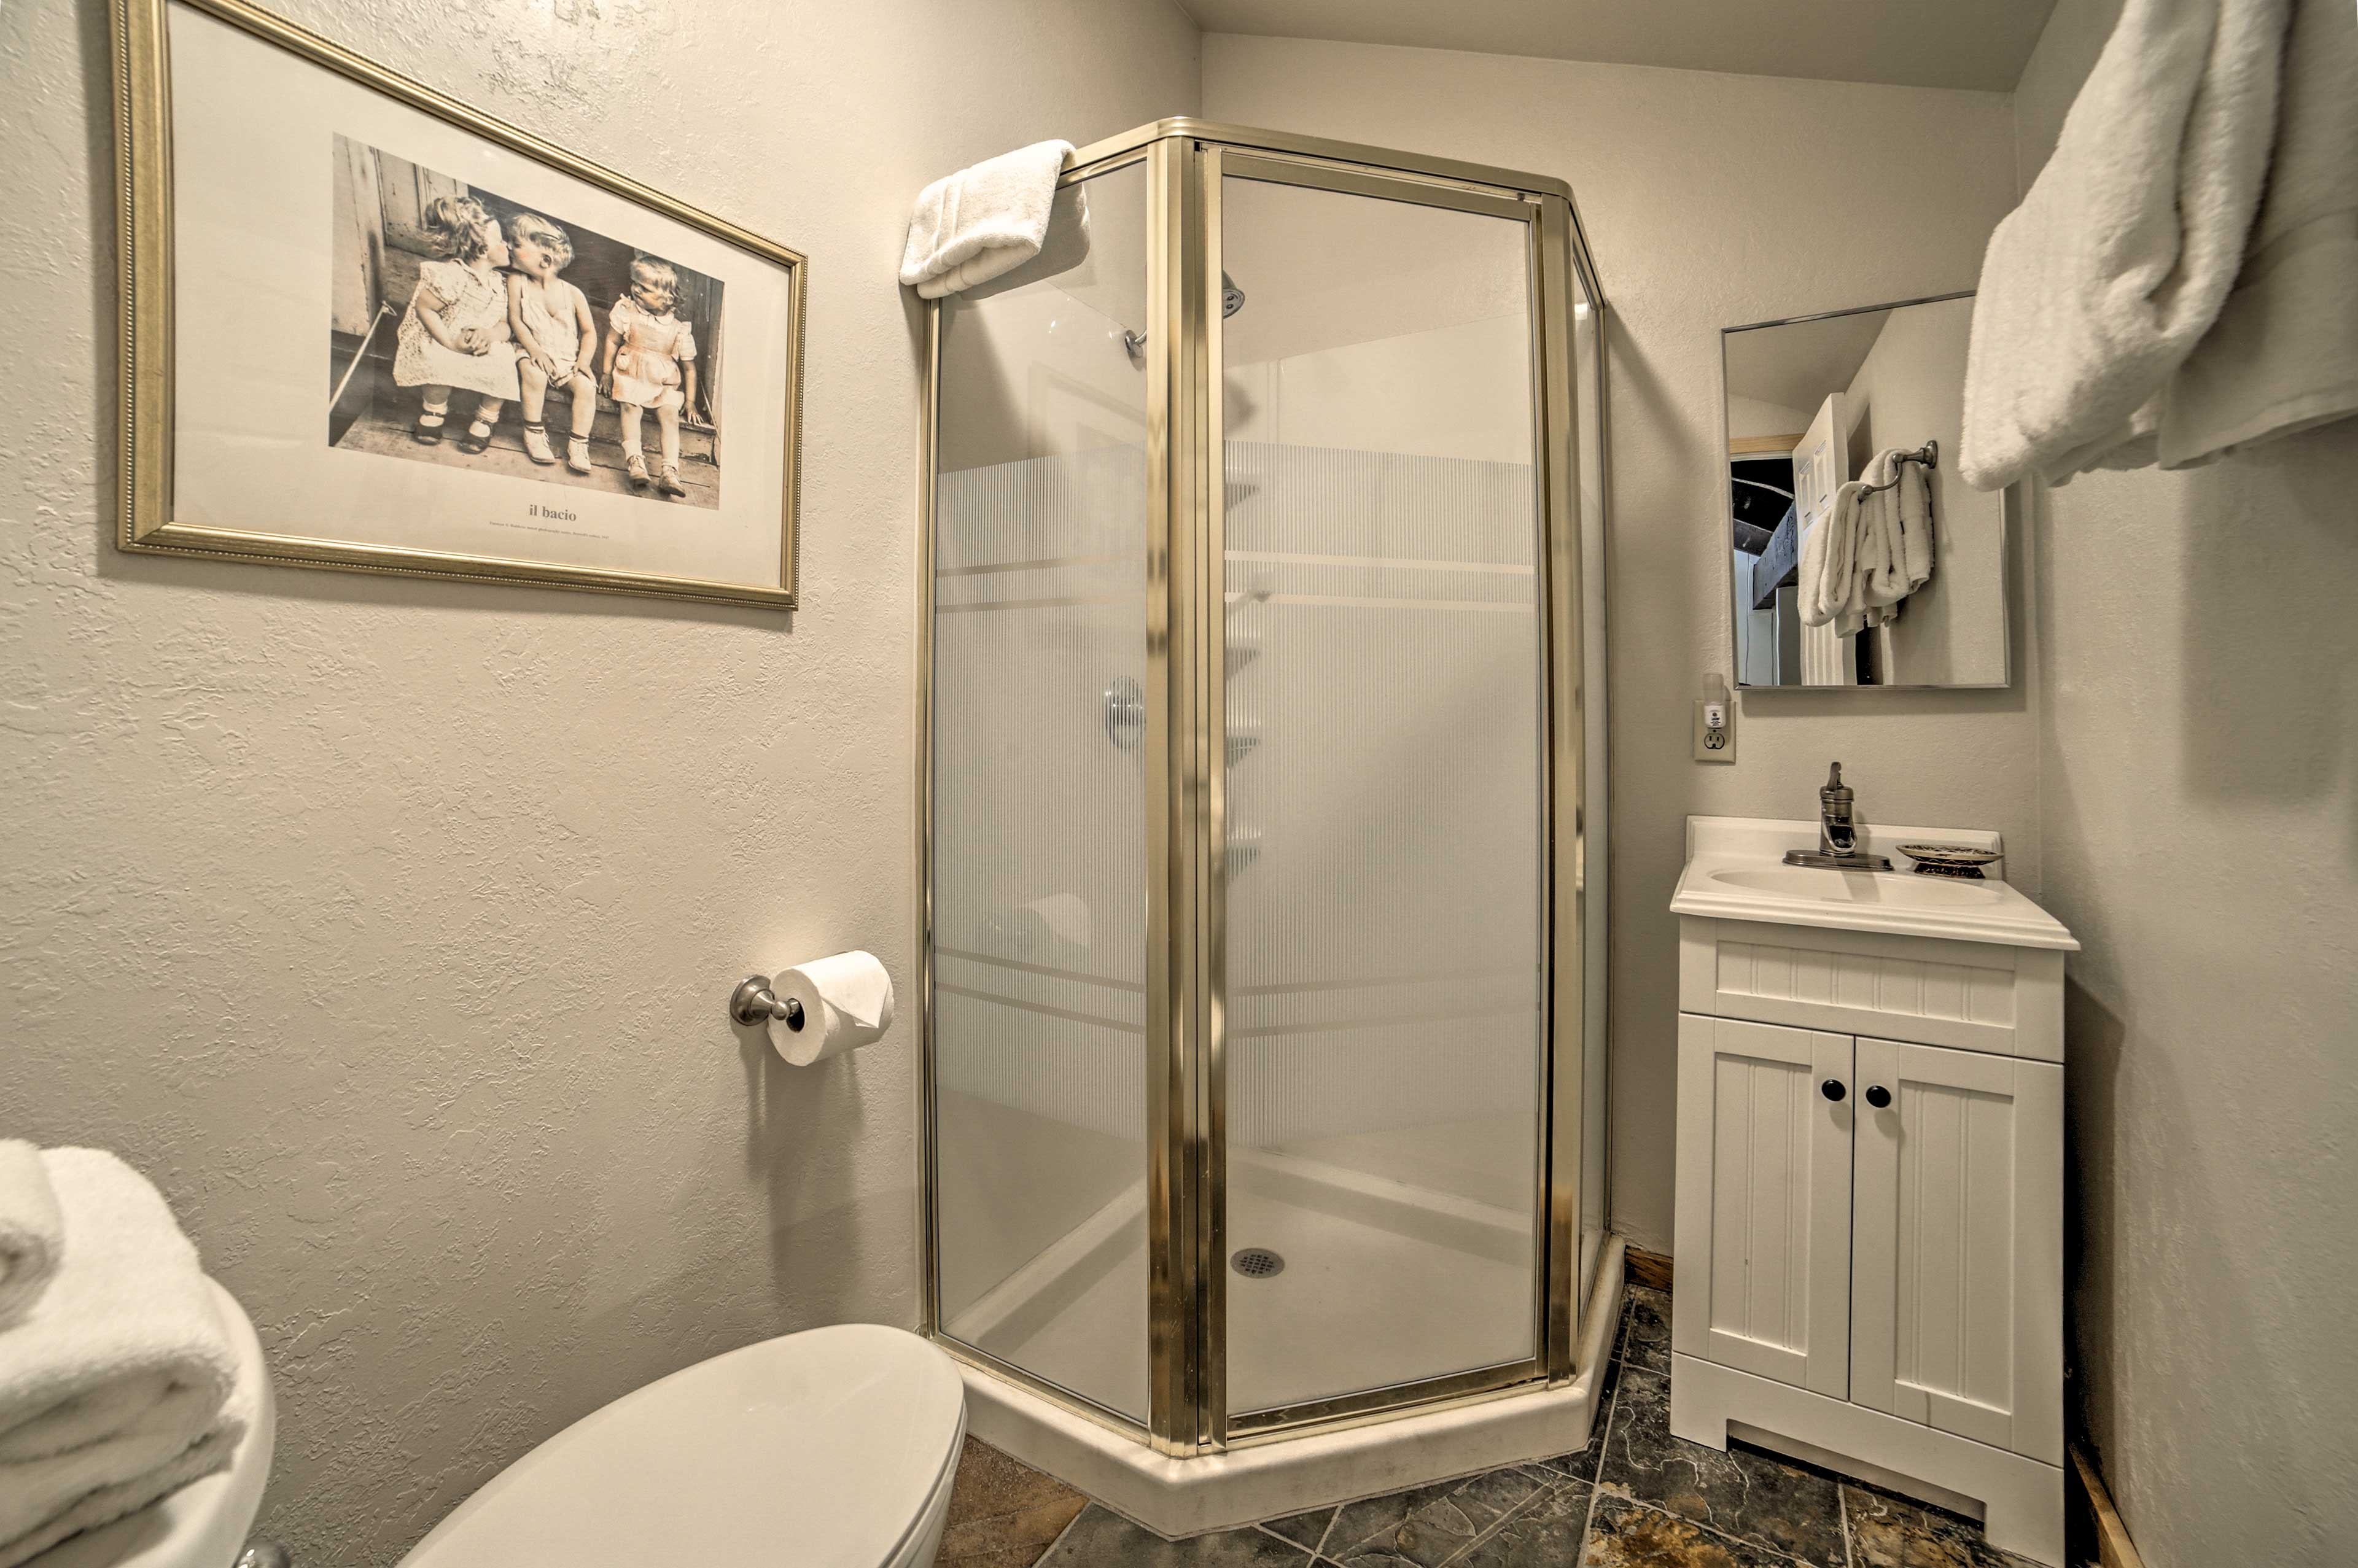 With 2 bathrooms, there's plenty of space to wash up.